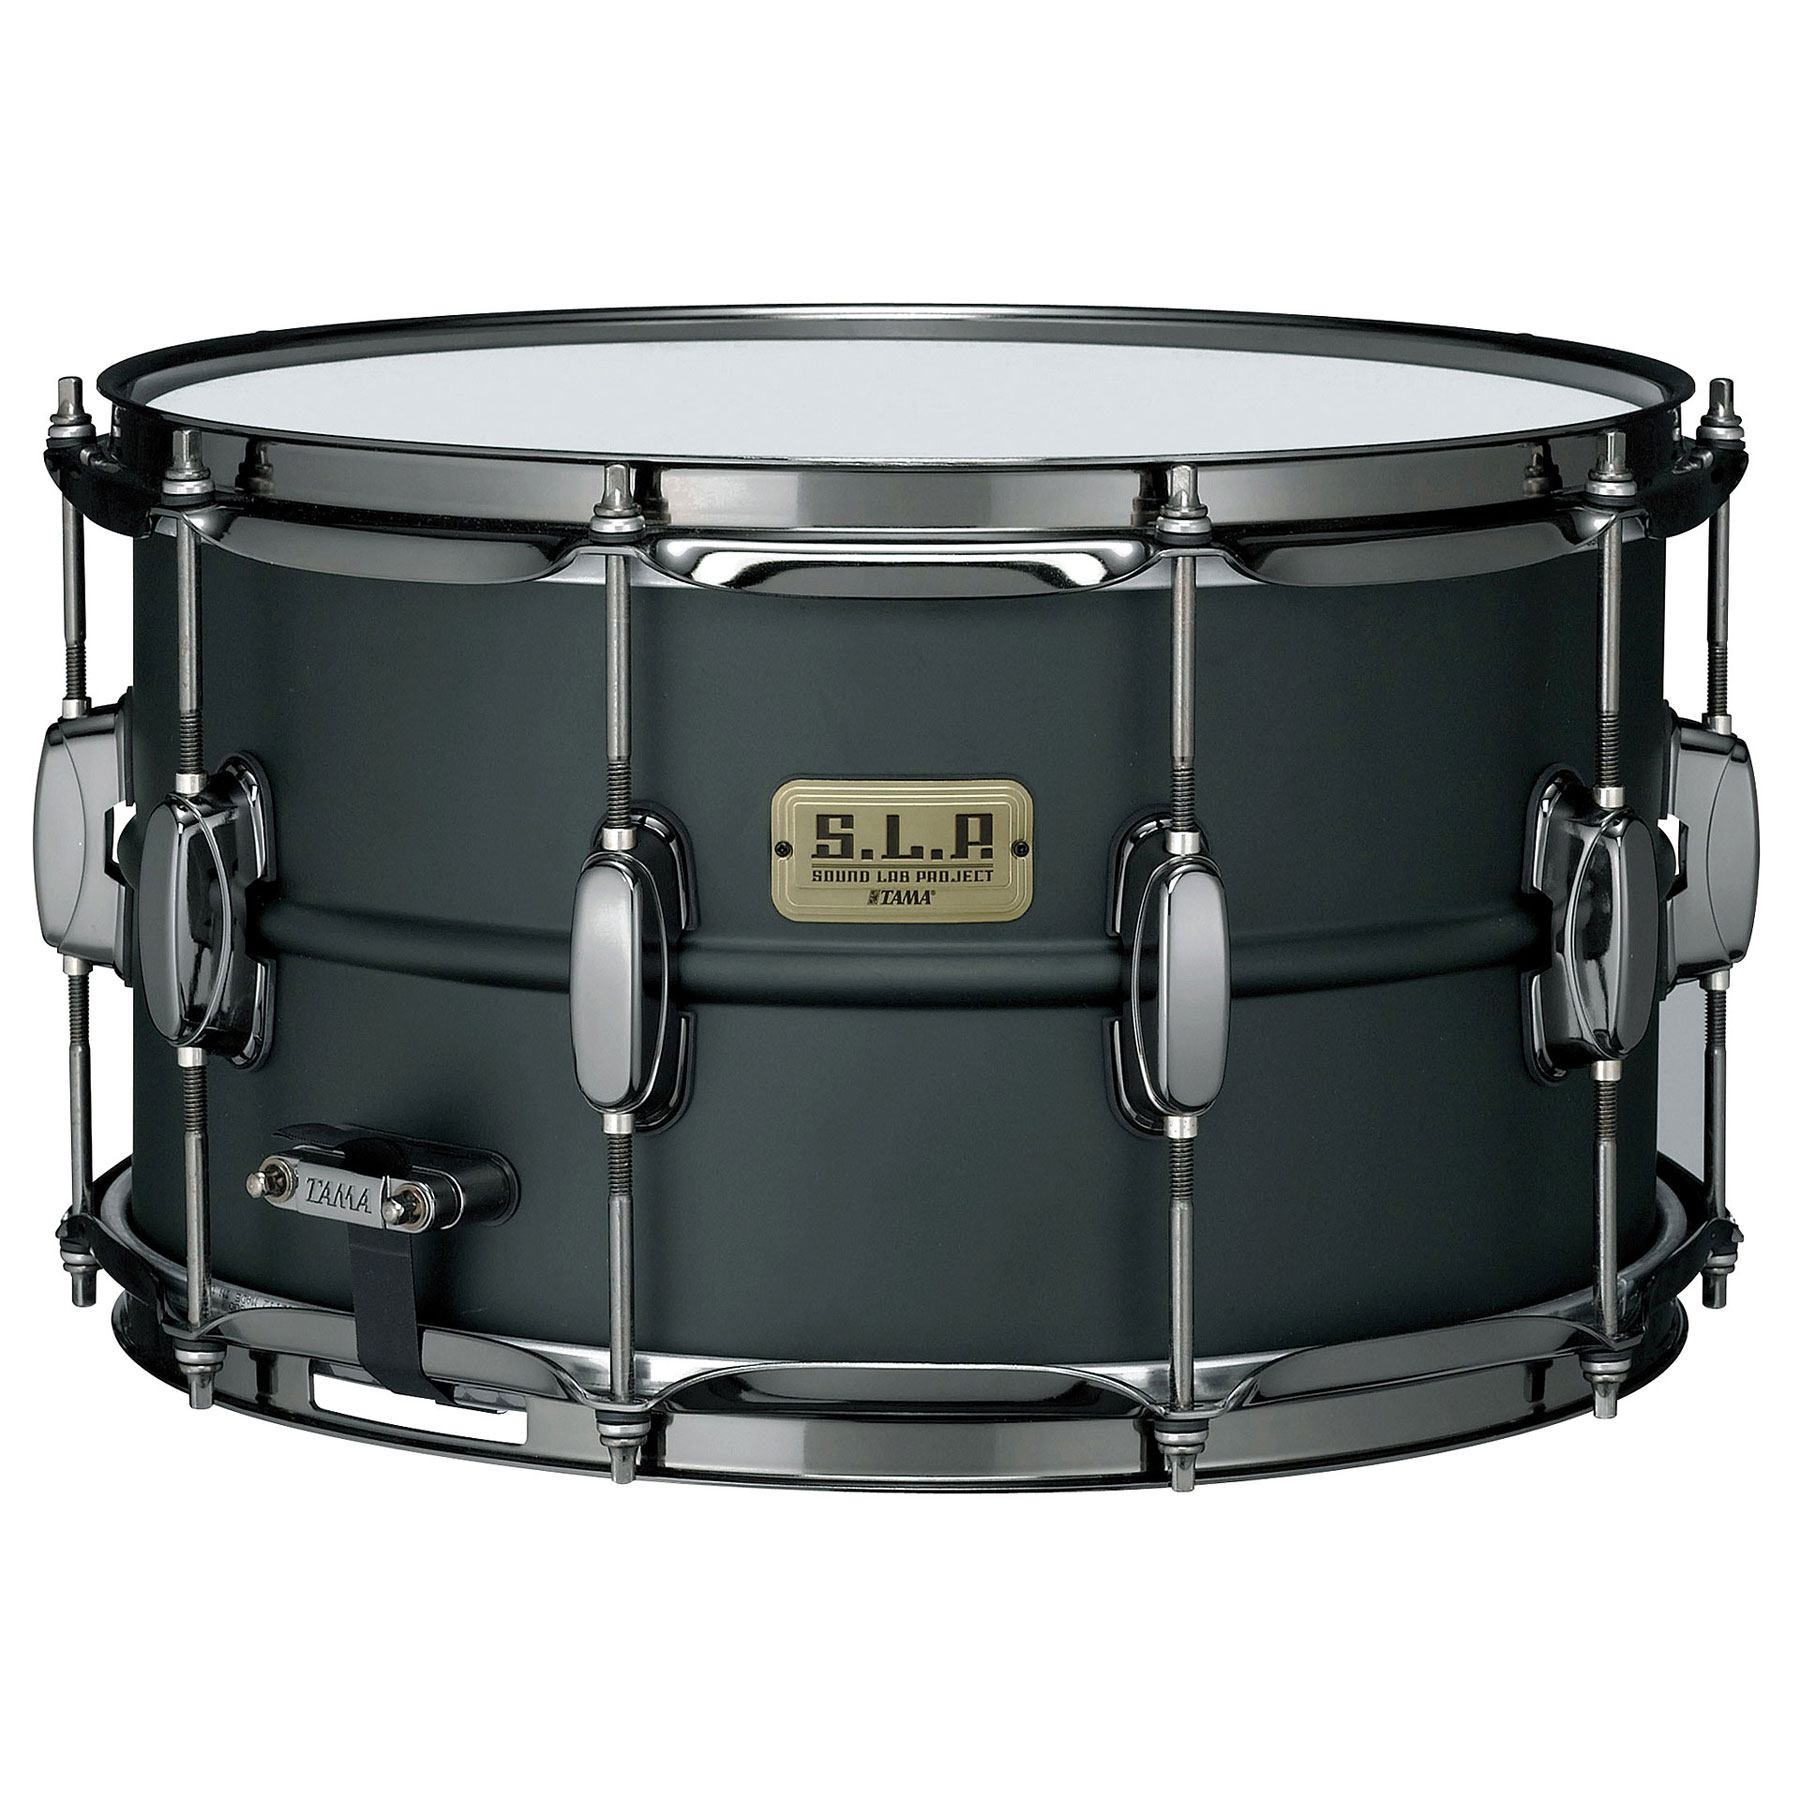 "Tama 8"" x 14"" SLP Series Big Black Steel Snare Drum"